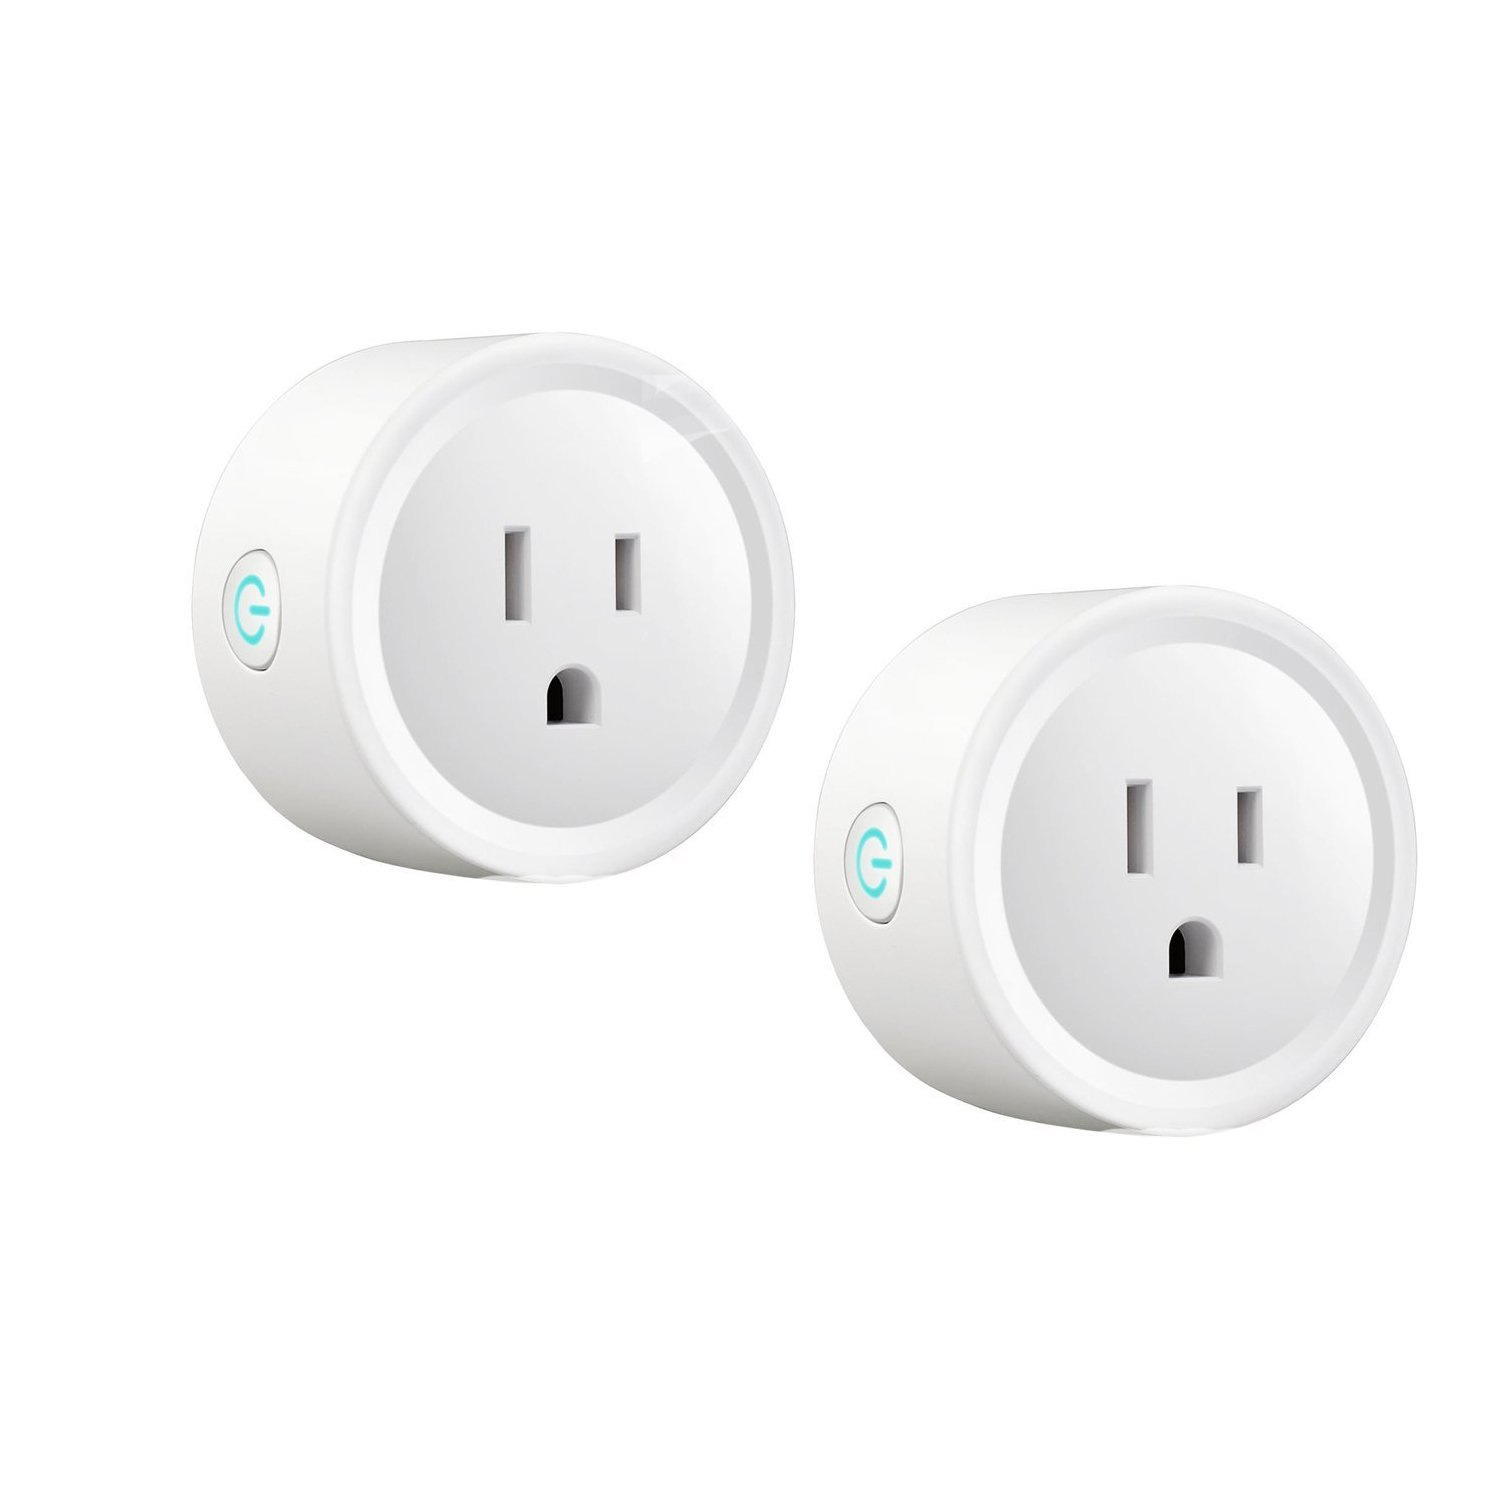 WIFI Smart Plug Work with Amazon Alexa, Google Home, IFTTT, BASDUN Mini Wireless Outlet Switch Remote Control Your Devices from Anywhere, No Hub Required (2 Pack)